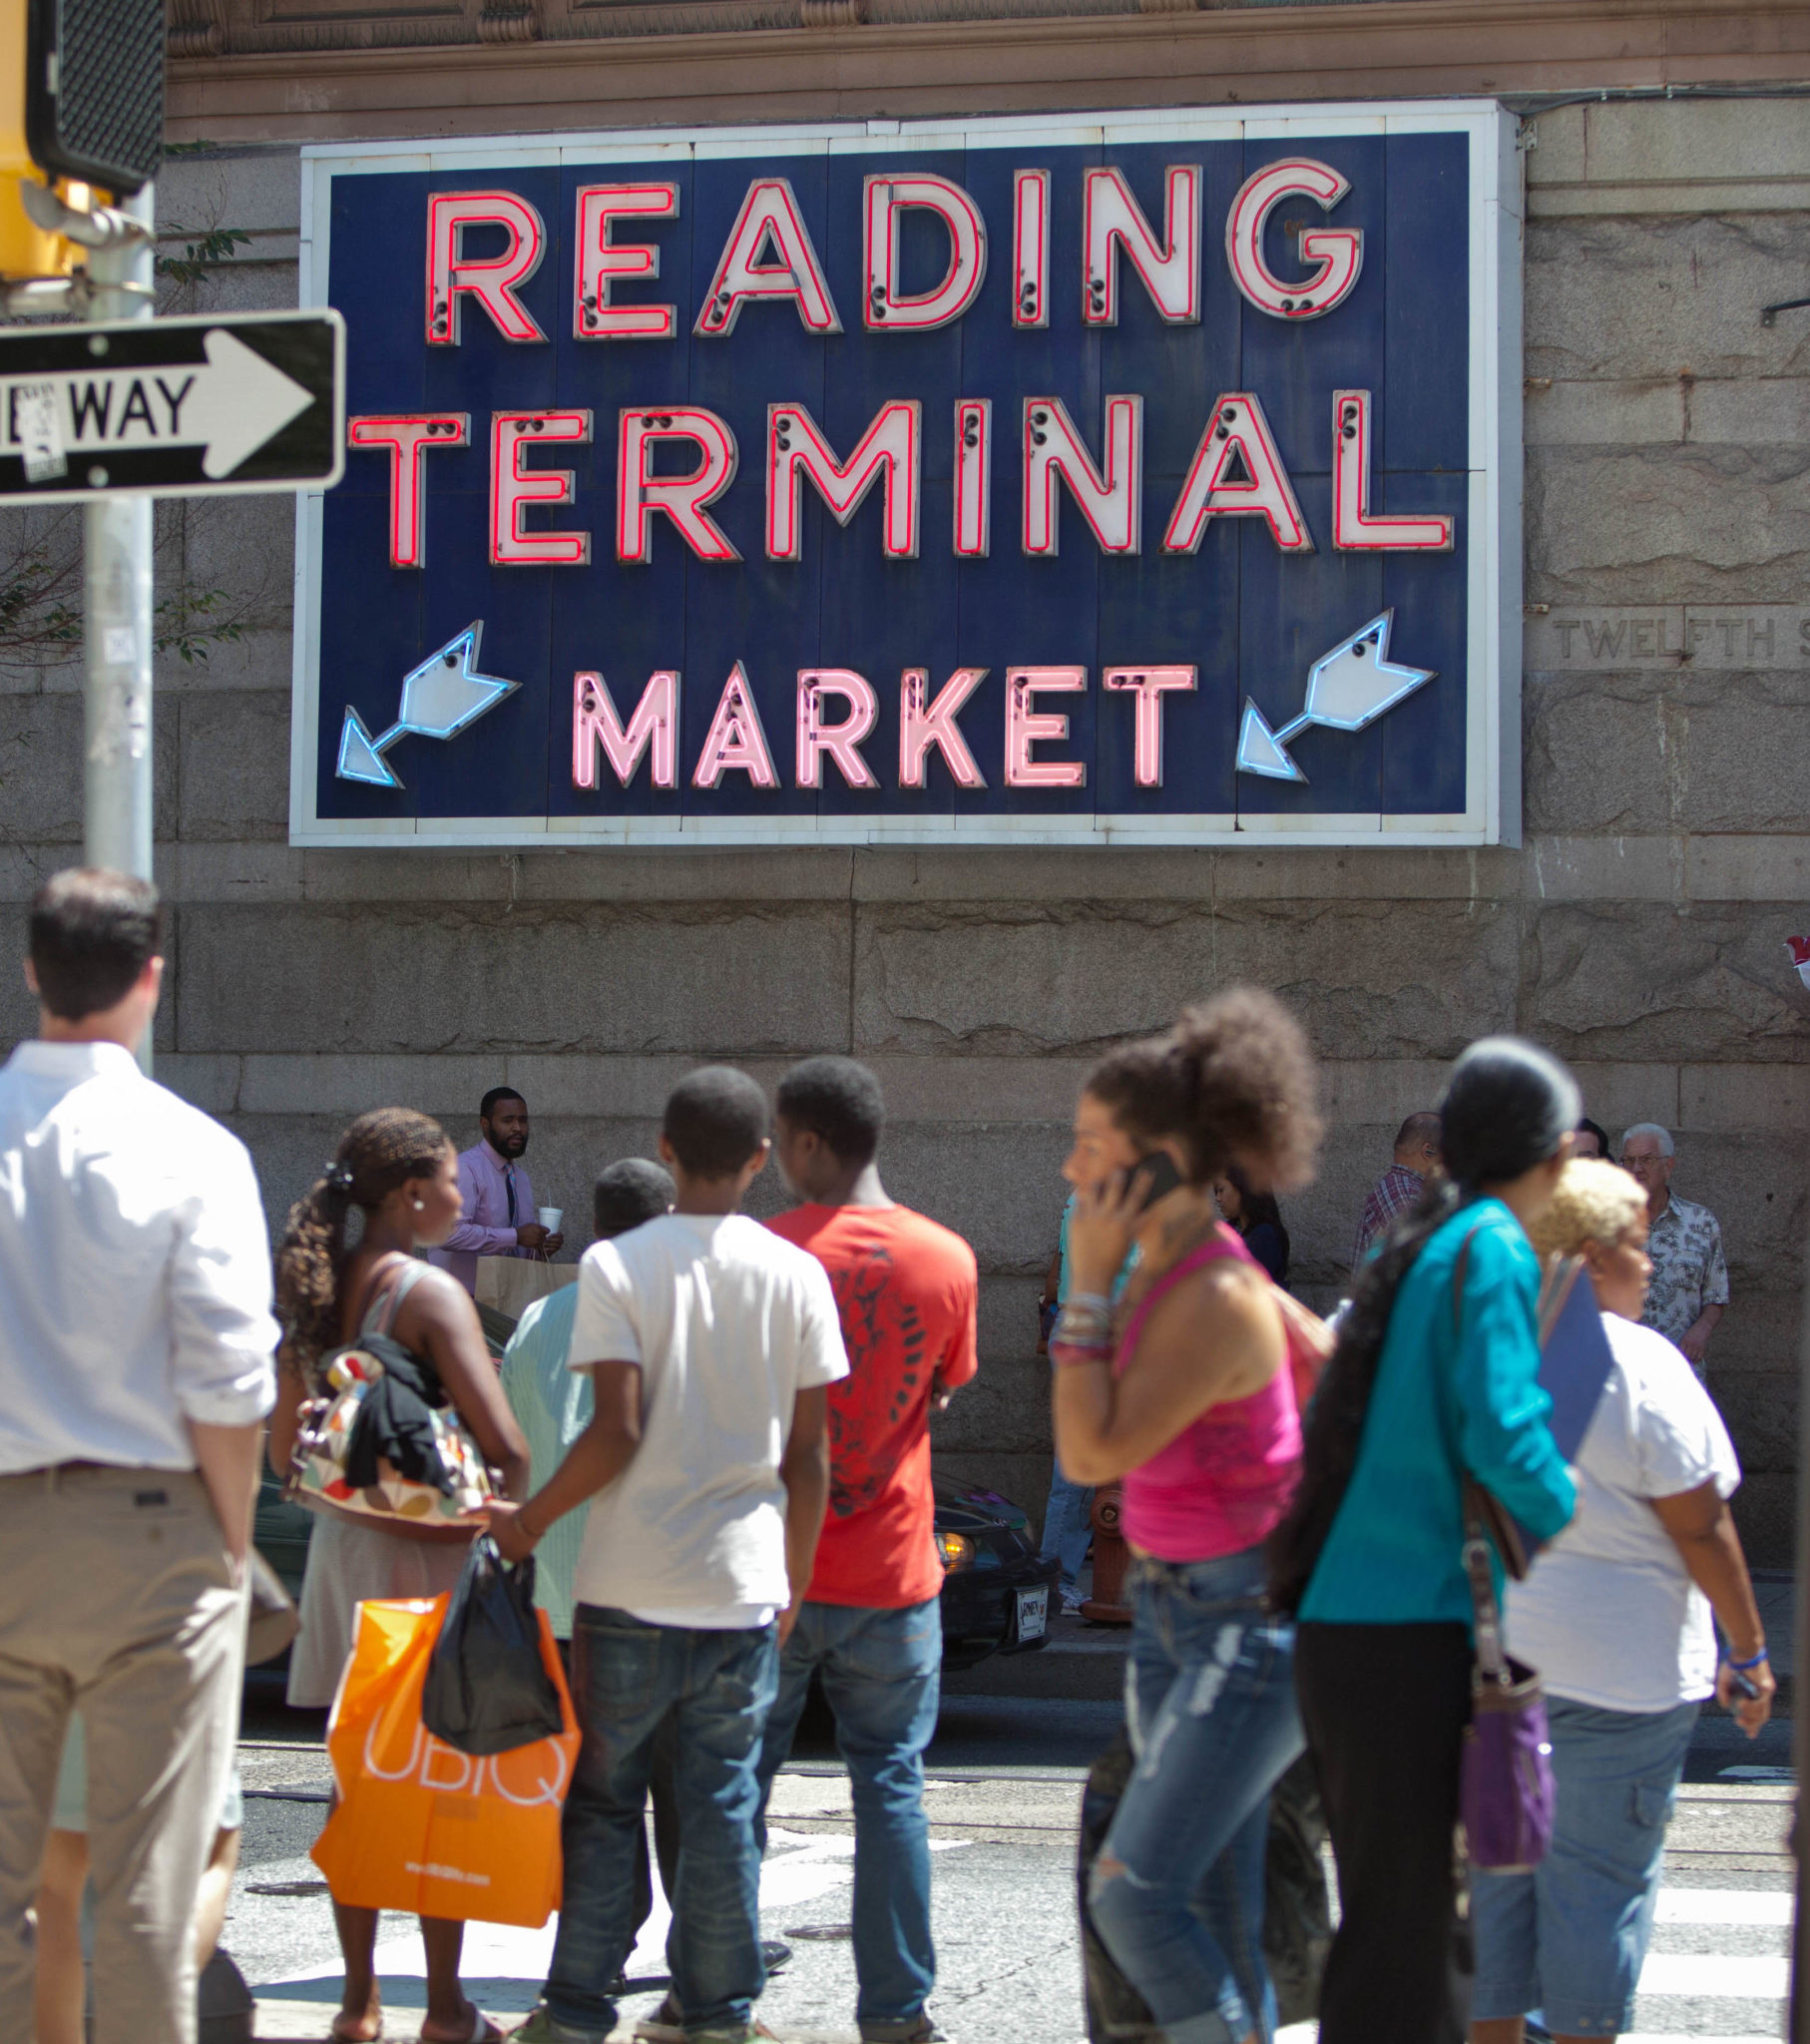 12th street signage for the Reading Terminal Market, July 27, 2011. (David M Warren / Staff Photographer, Philadelphia Inquirer)